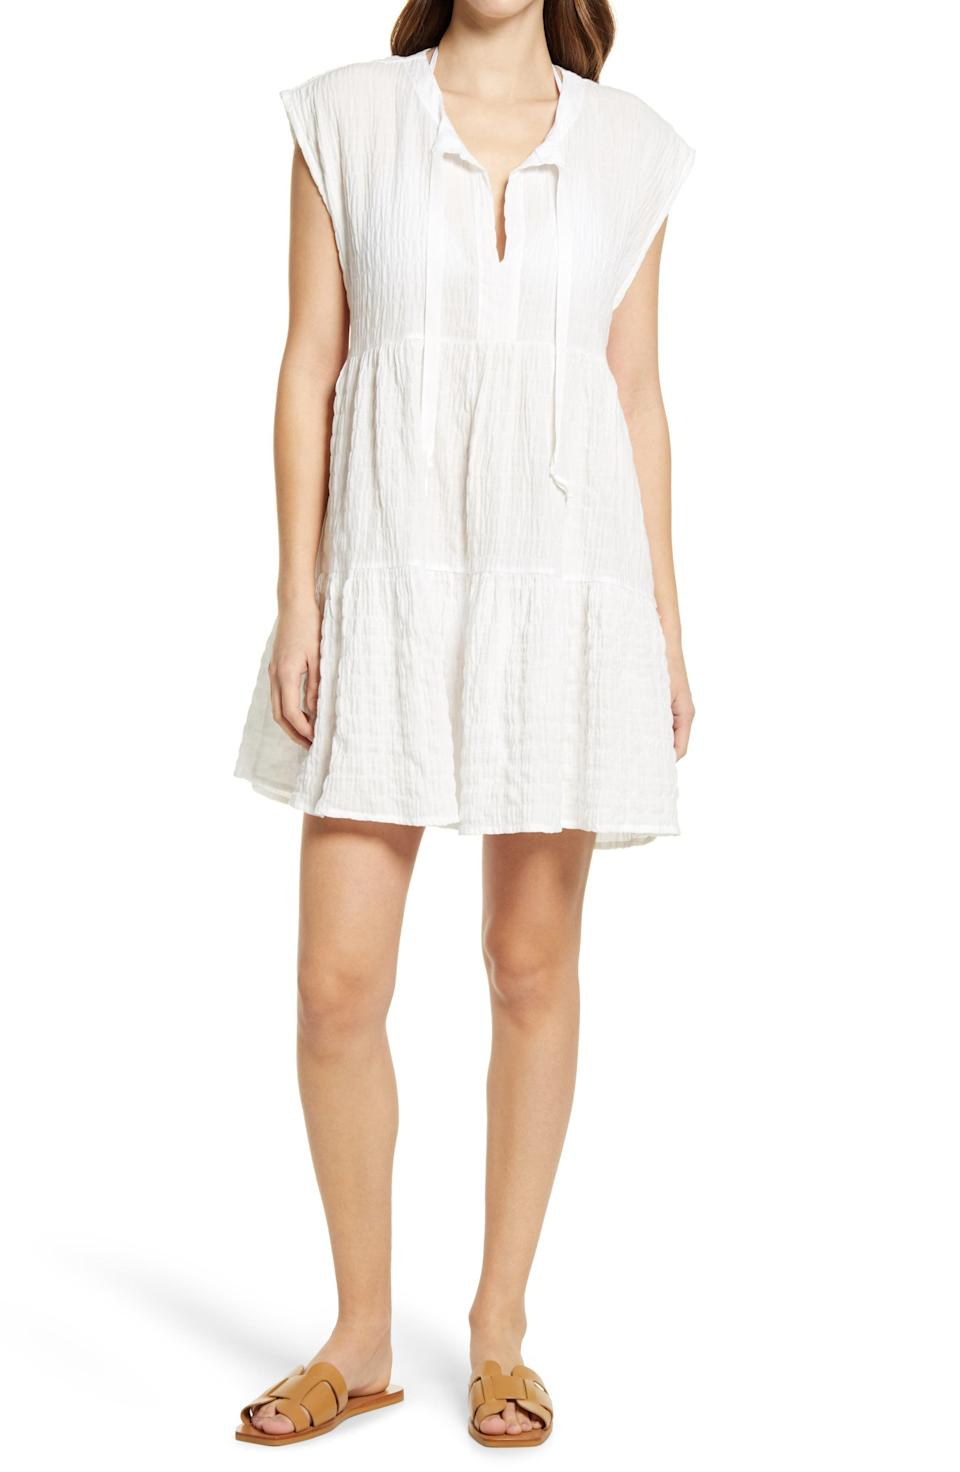 """<p><strong>Robin Piccone </strong></p><p>nordstrom.com</p><p><strong>$108.00</strong></p><p><a href=""""https://go.redirectingat.com?id=74968X1596630&url=https%3A%2F%2Fwww.nordstrom.com%2Fs%2Frobin-piccone-fiona-flouncy-cover-up-dress%2F5801965&sref=https%3A%2F%2Fwww.townandcountrymag.com%2Fstyle%2Ffashion-trends%2Fg27681571%2Fbest-beach-coverups%2F"""" rel=""""nofollow noopener"""" target=""""_blank"""" data-ylk=""""slk:Shop Now"""" class=""""link rapid-noclick-resp"""">Shop Now</a></p><p>For a flouncy coverup that could pass as a sundress, this lightweight and tiered number from Robin Piccone simply will not fail.</p><p><strong>MORE</strong>: <a href=""""https://www.townandcountrymag.com/style/fashion-trends/g36342991/best-white-dresses/"""" rel=""""nofollow noopener"""" target=""""_blank"""" data-ylk=""""slk:Best White Dresses for Summer"""" class=""""link rapid-noclick-resp"""">Best White Dresses for Summer </a></p>"""